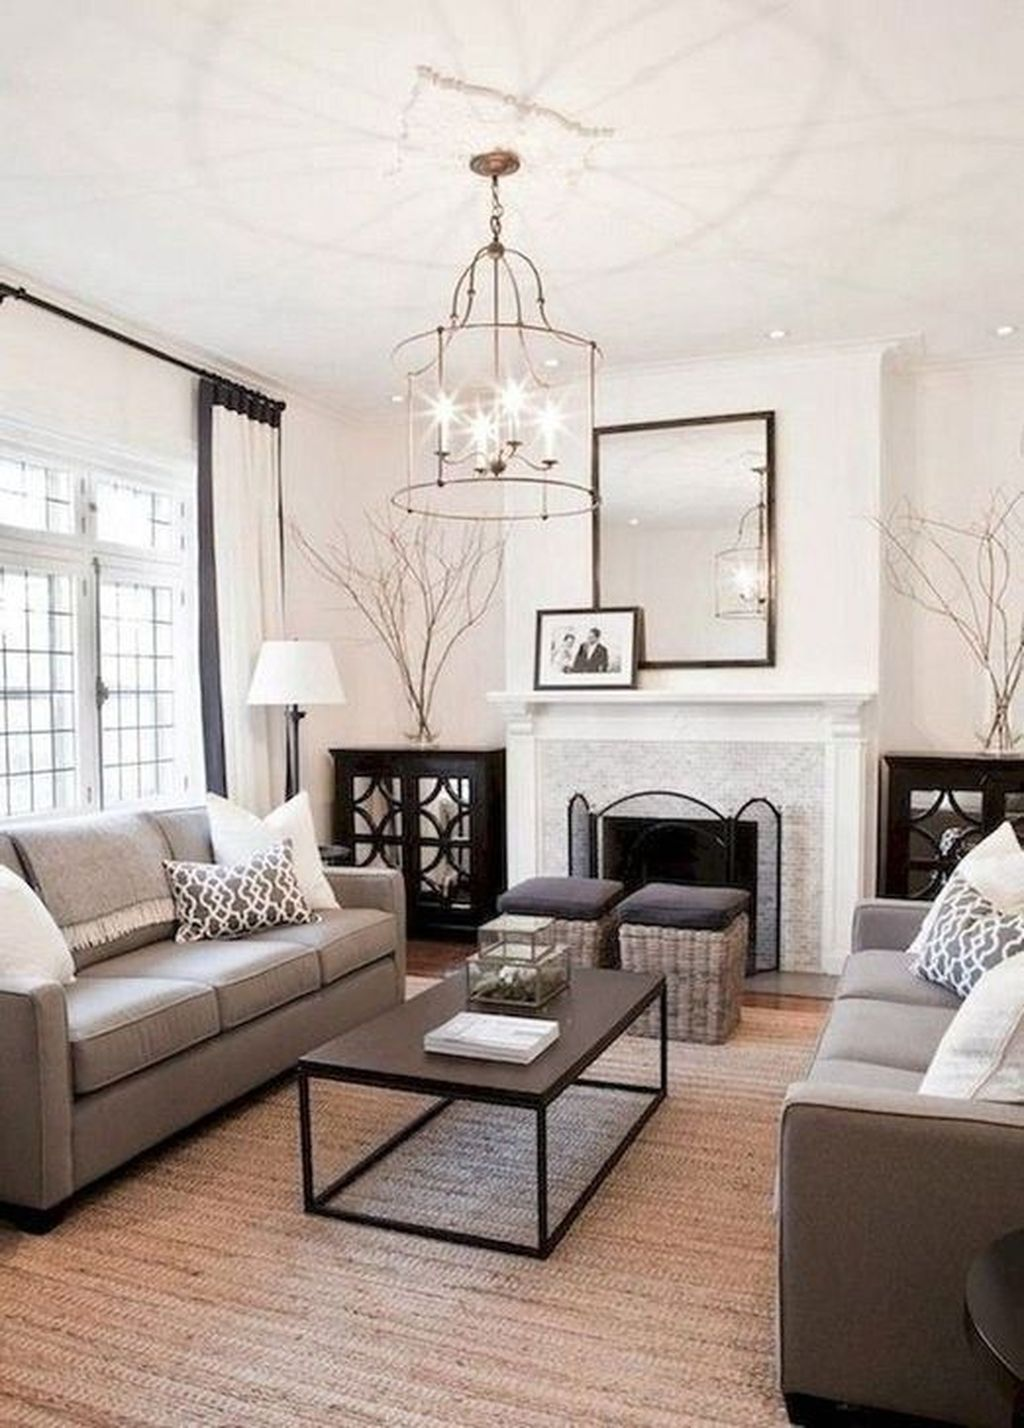 Awesome Minimalist Contemporary Living Room Decor Ideas 10